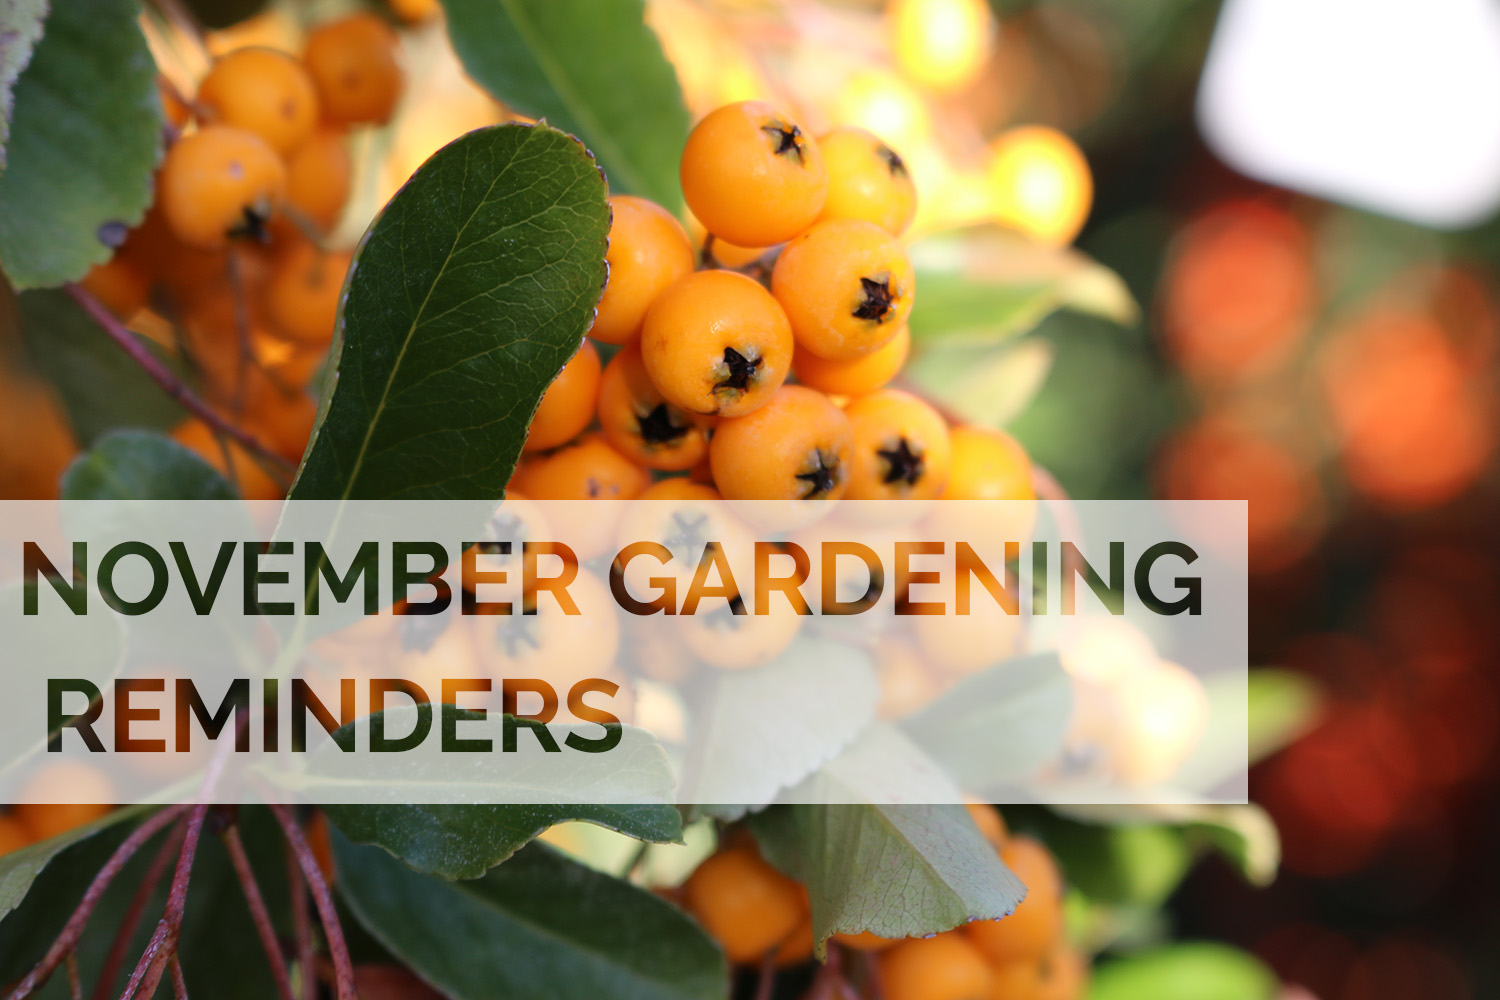 Jobs to do in the garden this November